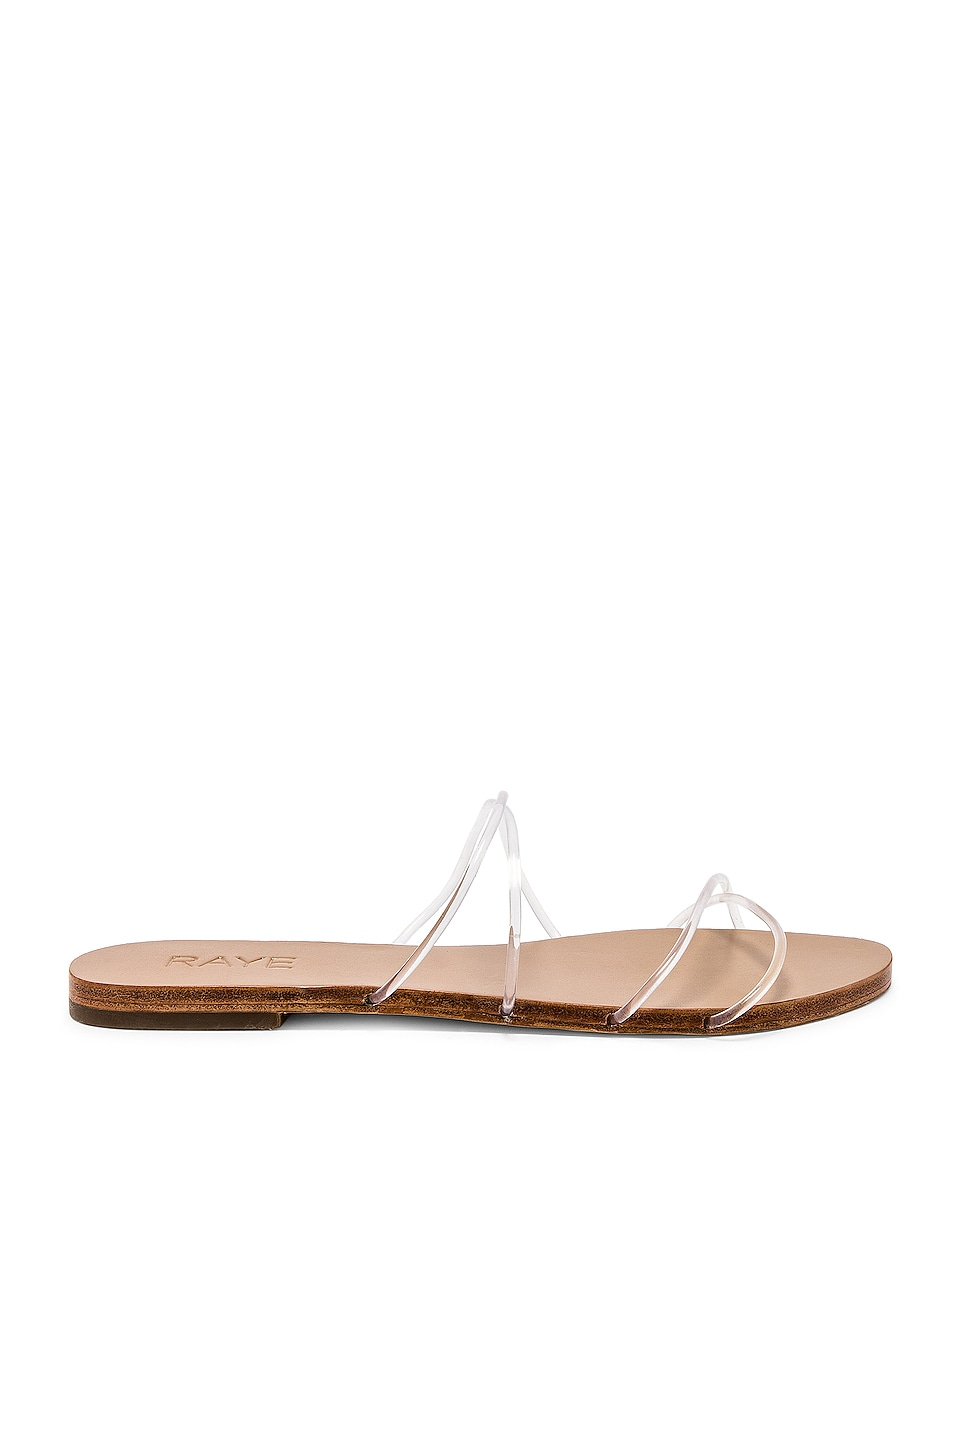 RAYE Tina Sandal in Clear